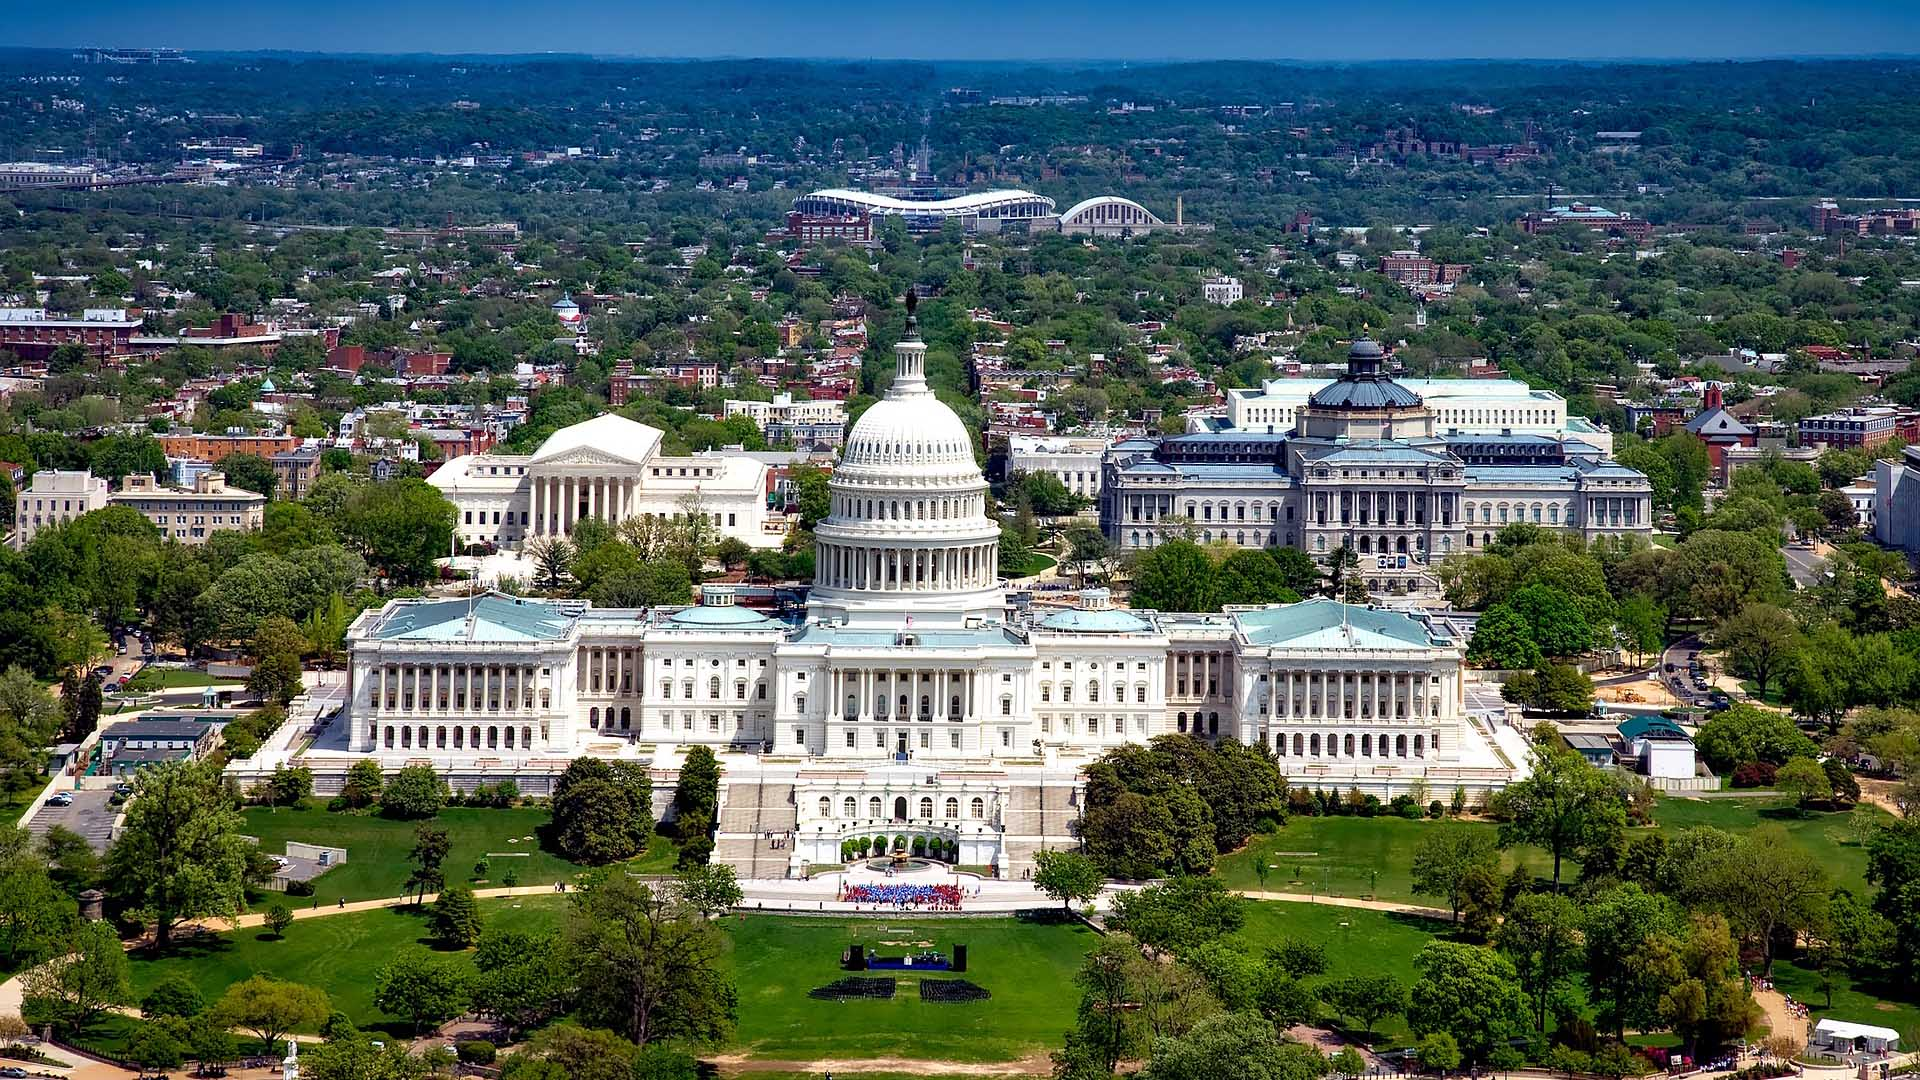 The U.S. Capitol in Washington D.C.